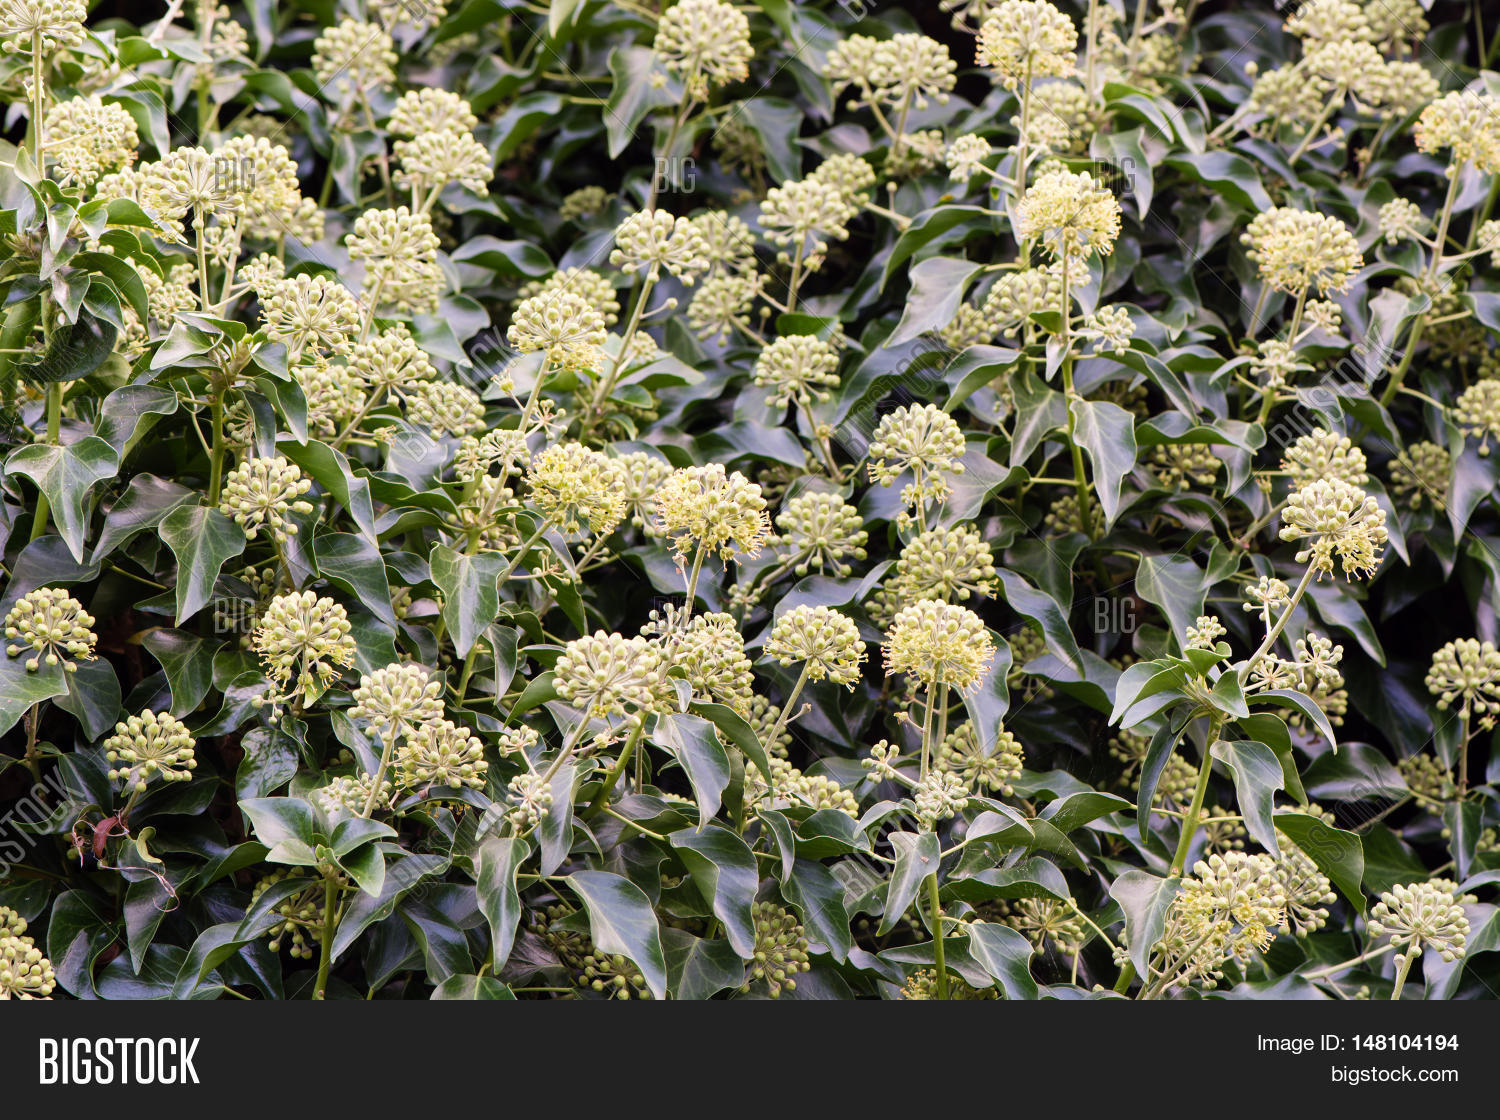 Ivy Hedera Helix Image Photo Free Trial Bigstock